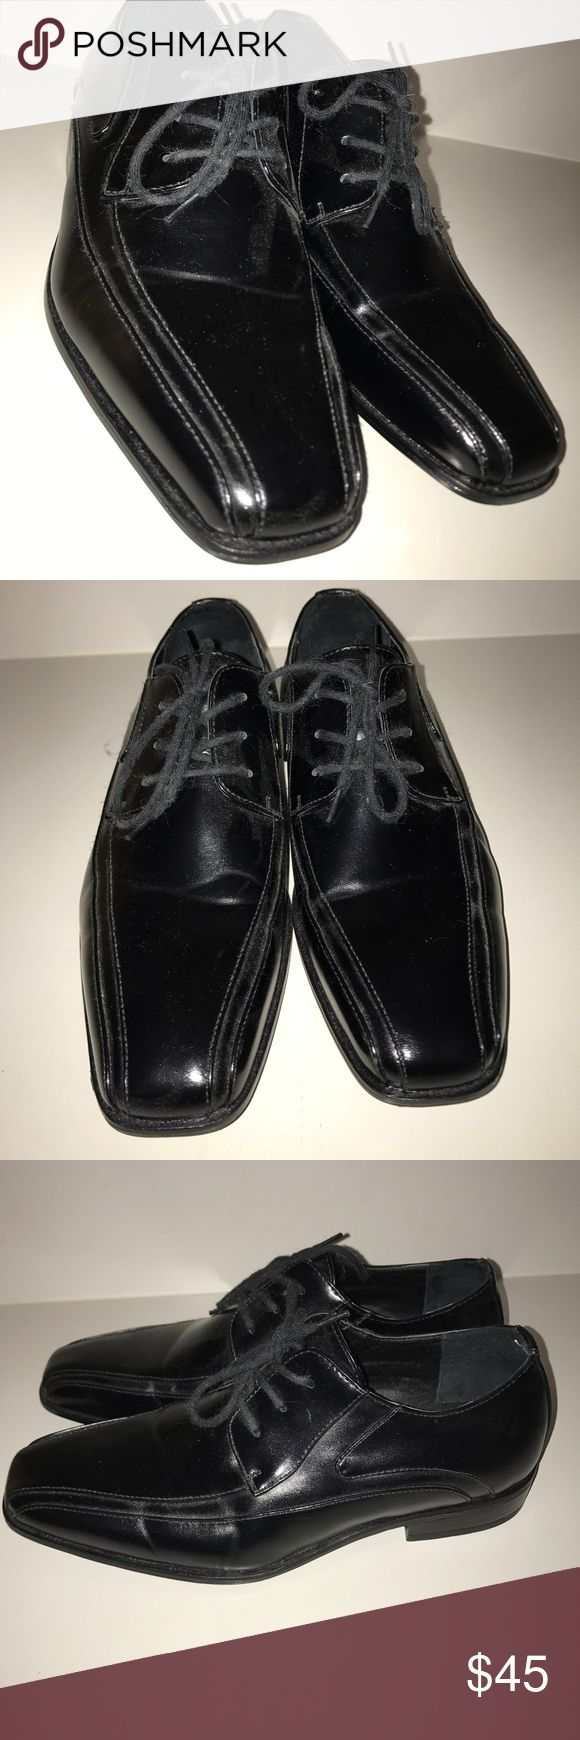 SALE!! MUST GOOOO STACY ADAMS DRESS SHOES Worn once and in amazing condition! Smells brand new still! Stacy Adams Shoes Dress Shoes